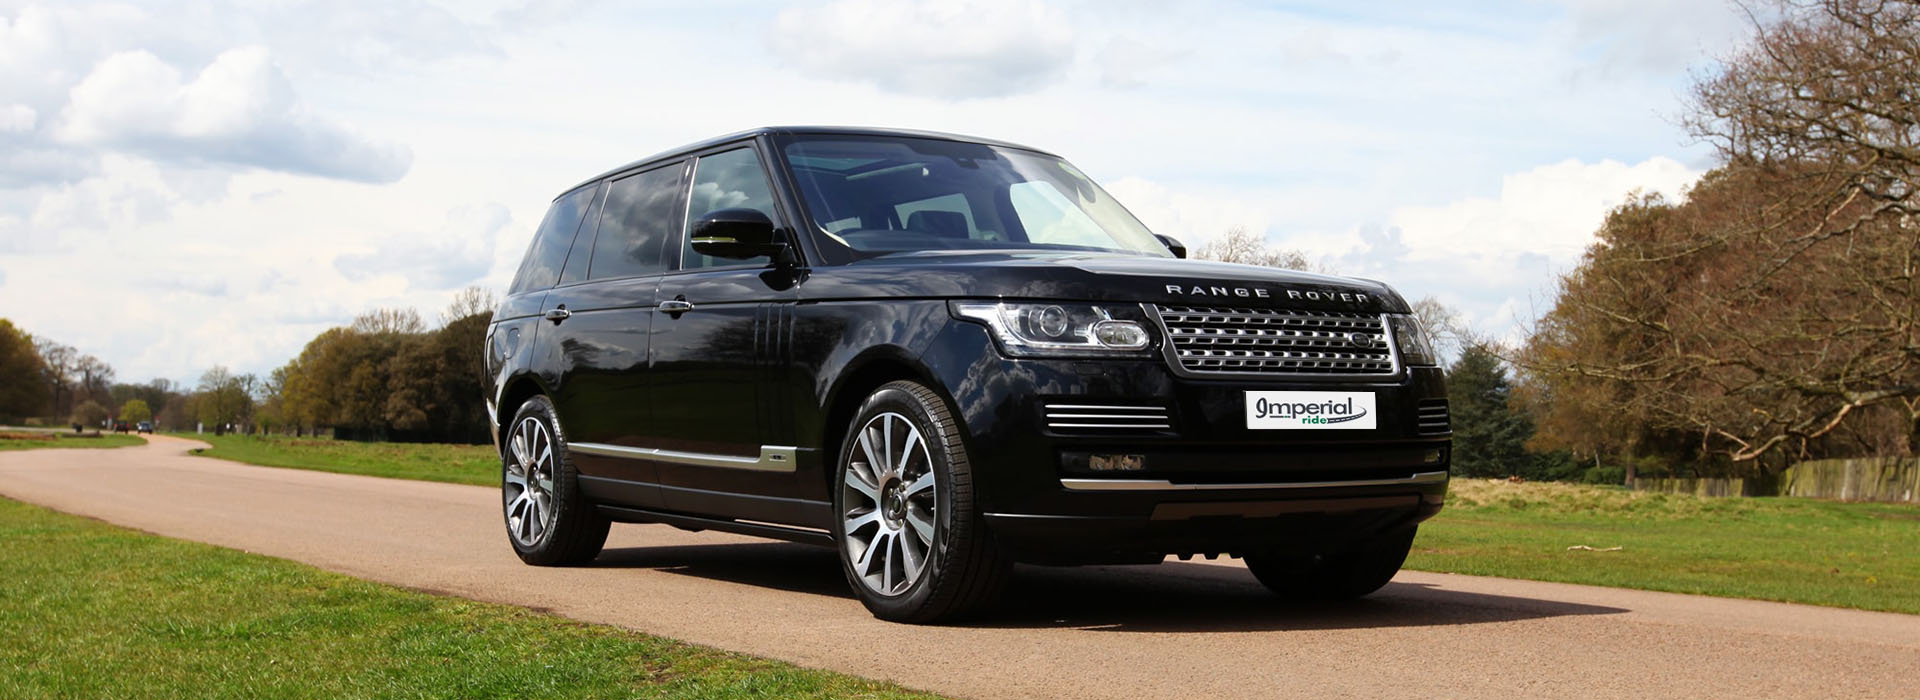 hire-range-rover-autobiography-chauffeur-london